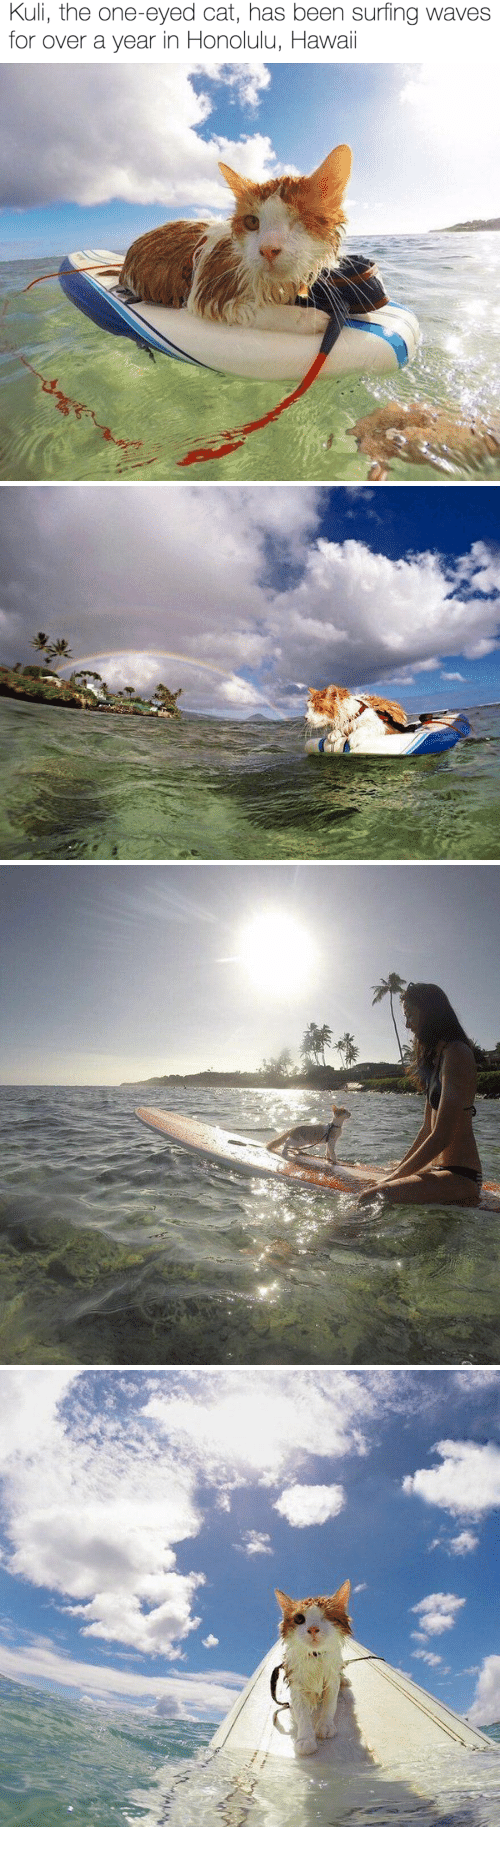 honolulu: Kuli, the one-eyed cat, has been surfing waves  for over a year in Honolulu, Hawaii